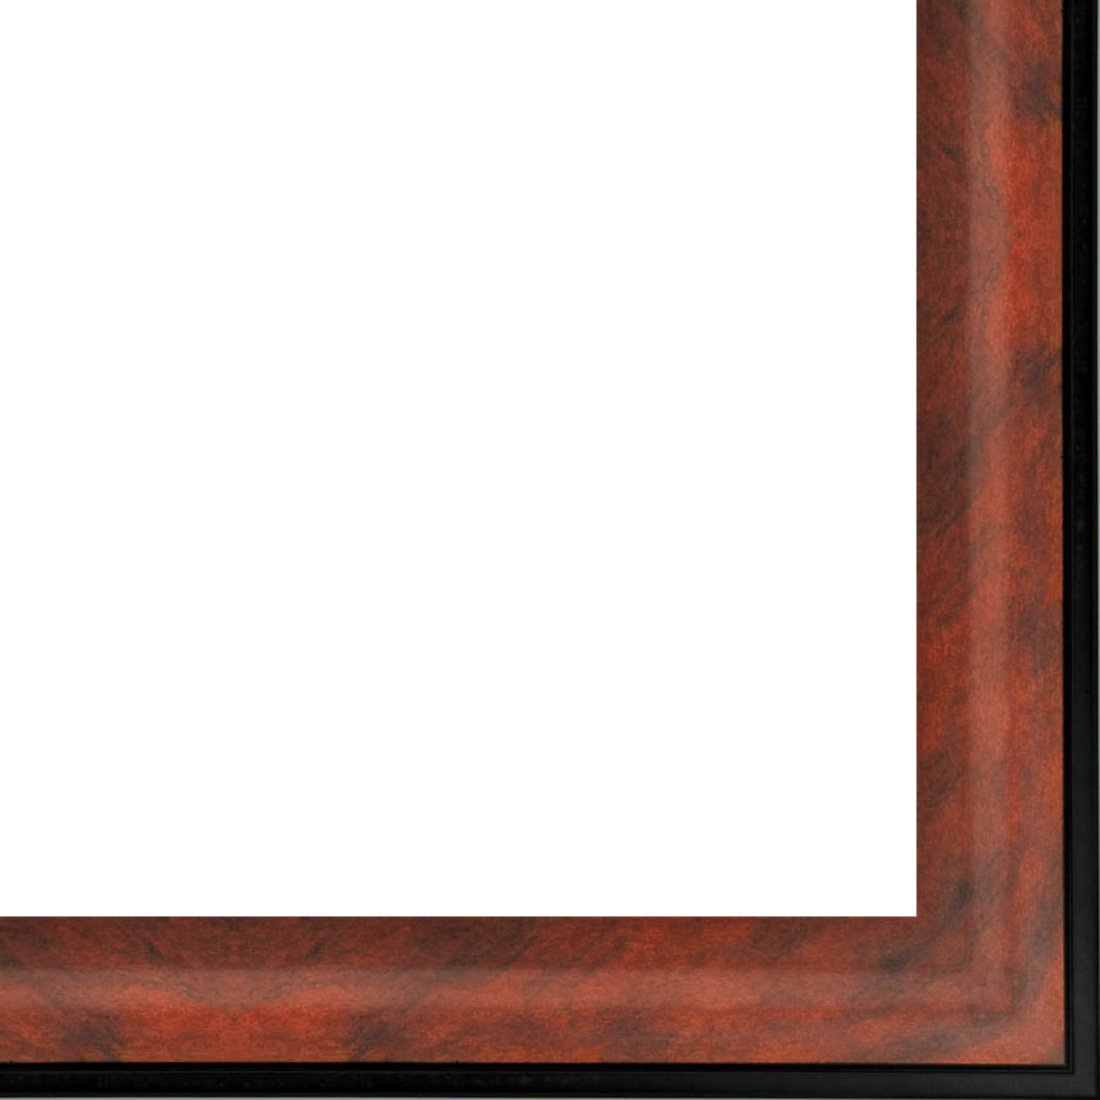 18ft bundle Contemporary Mahogany Finish Wood Picture Frame Moulding 3//8 rabbet depth 2 width